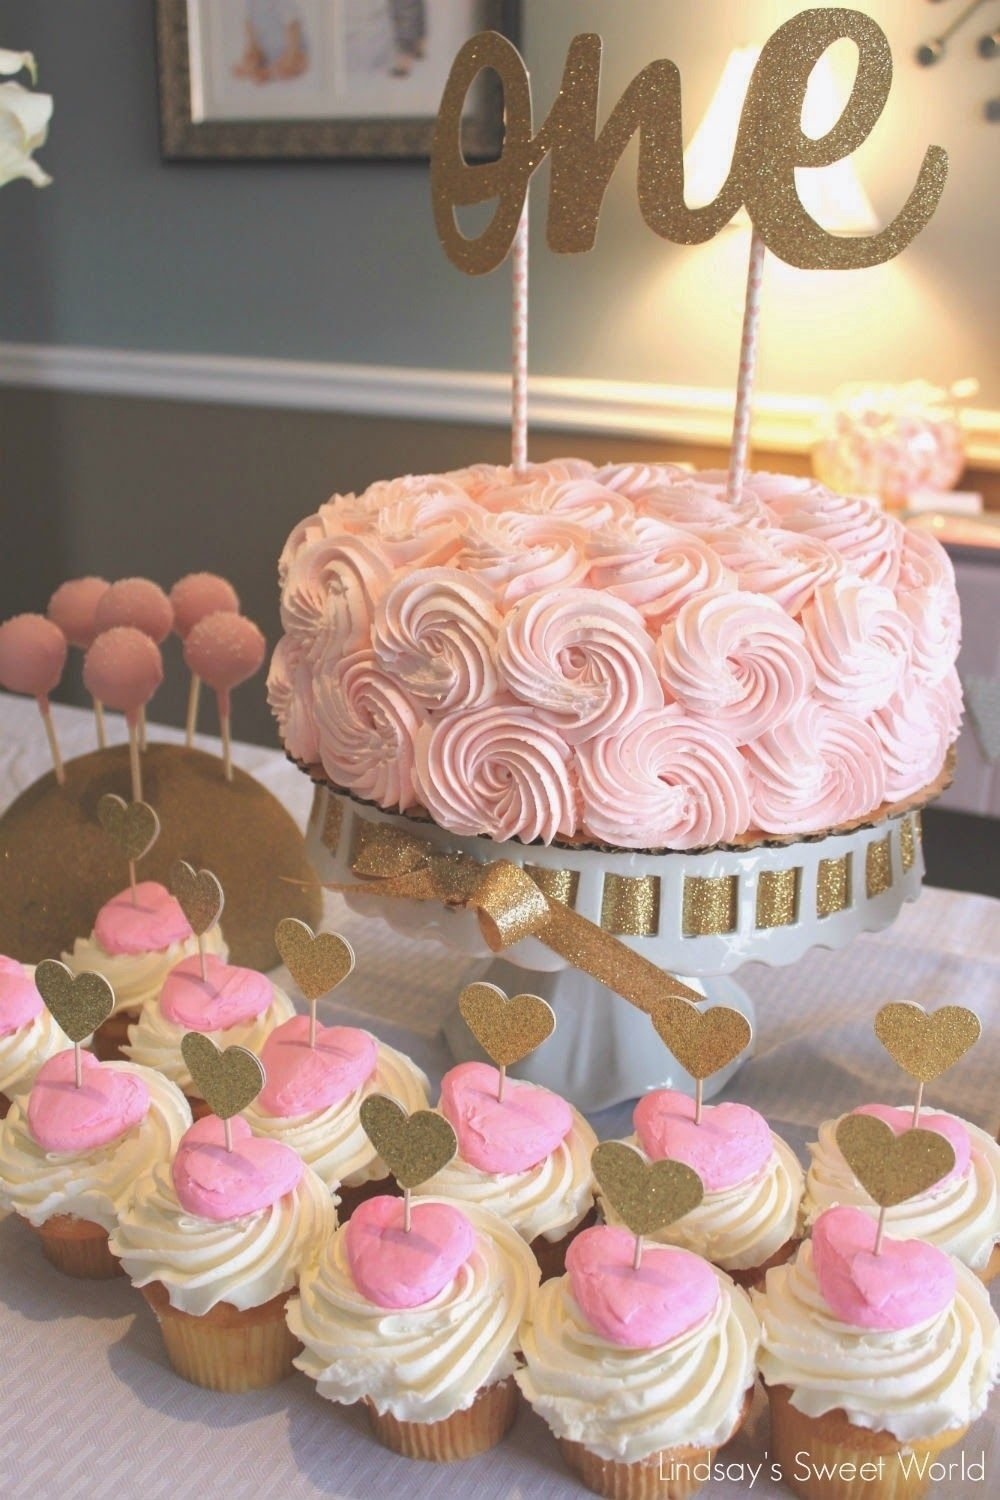 10 Most Popular First Birthday Cake Ideas For Girls pink gold first birthday beautiful cake and cupcakes love the 1 2020